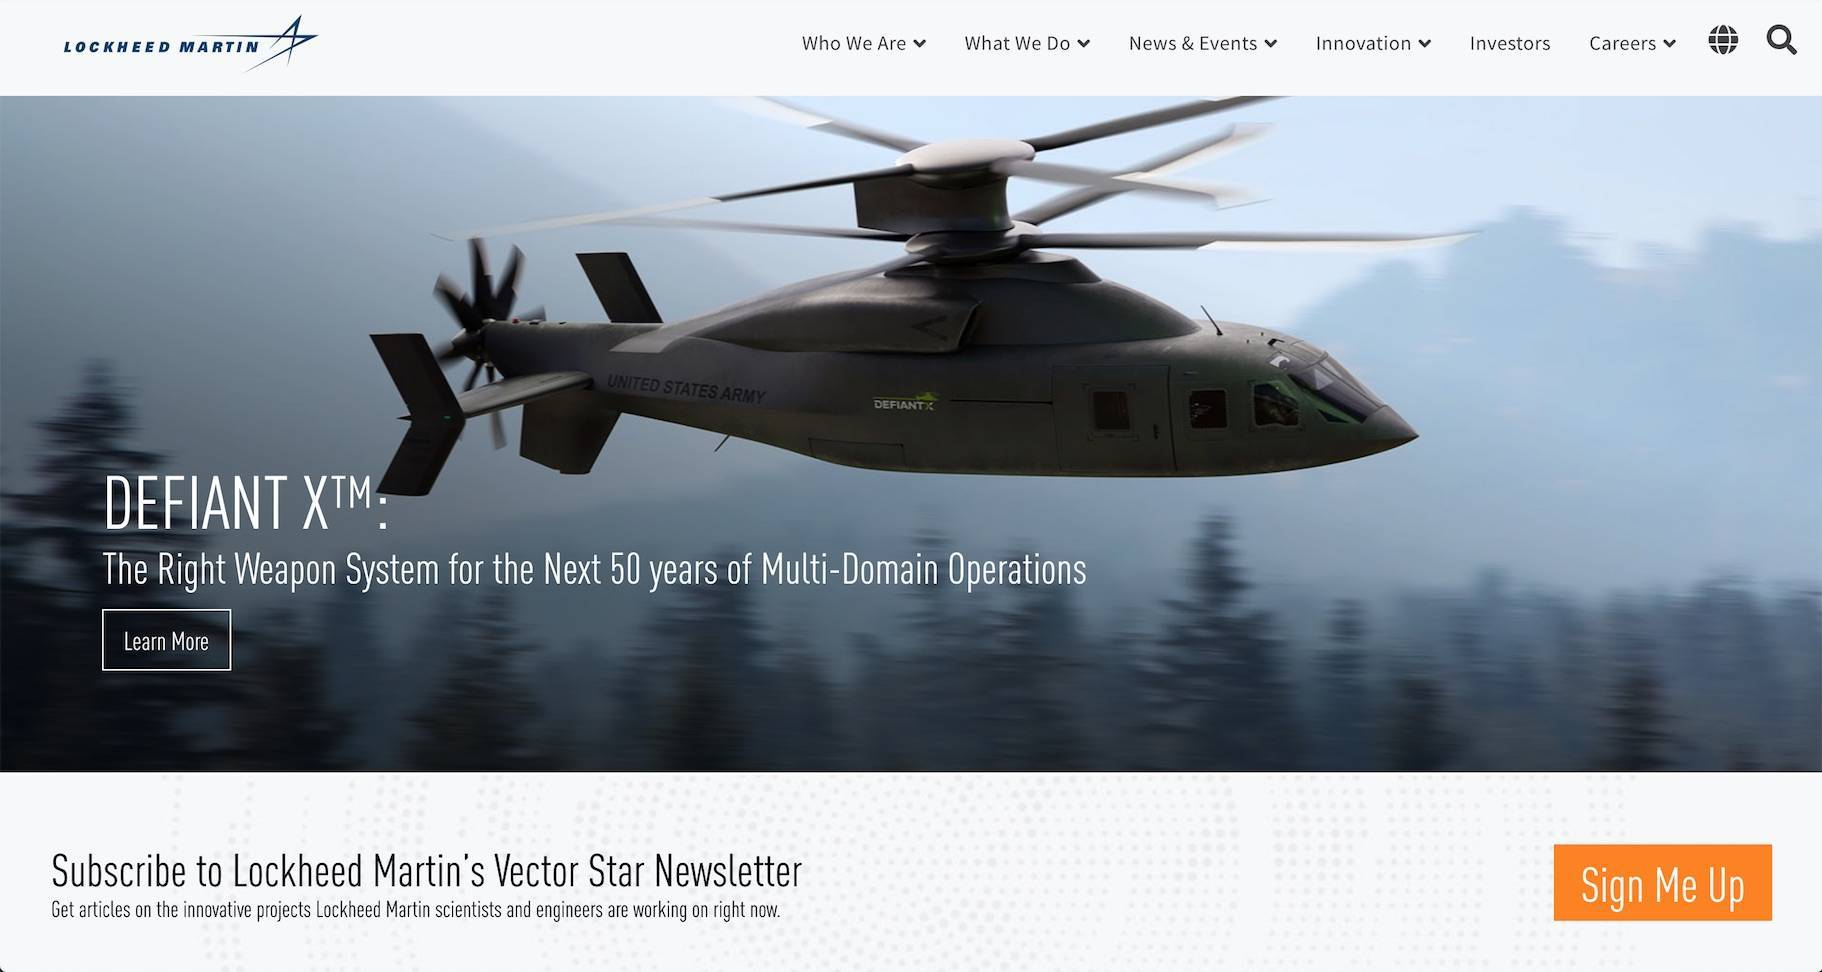 image of the Lockheed Martin manufacturing website homepage featuring high quality photo of helicopter